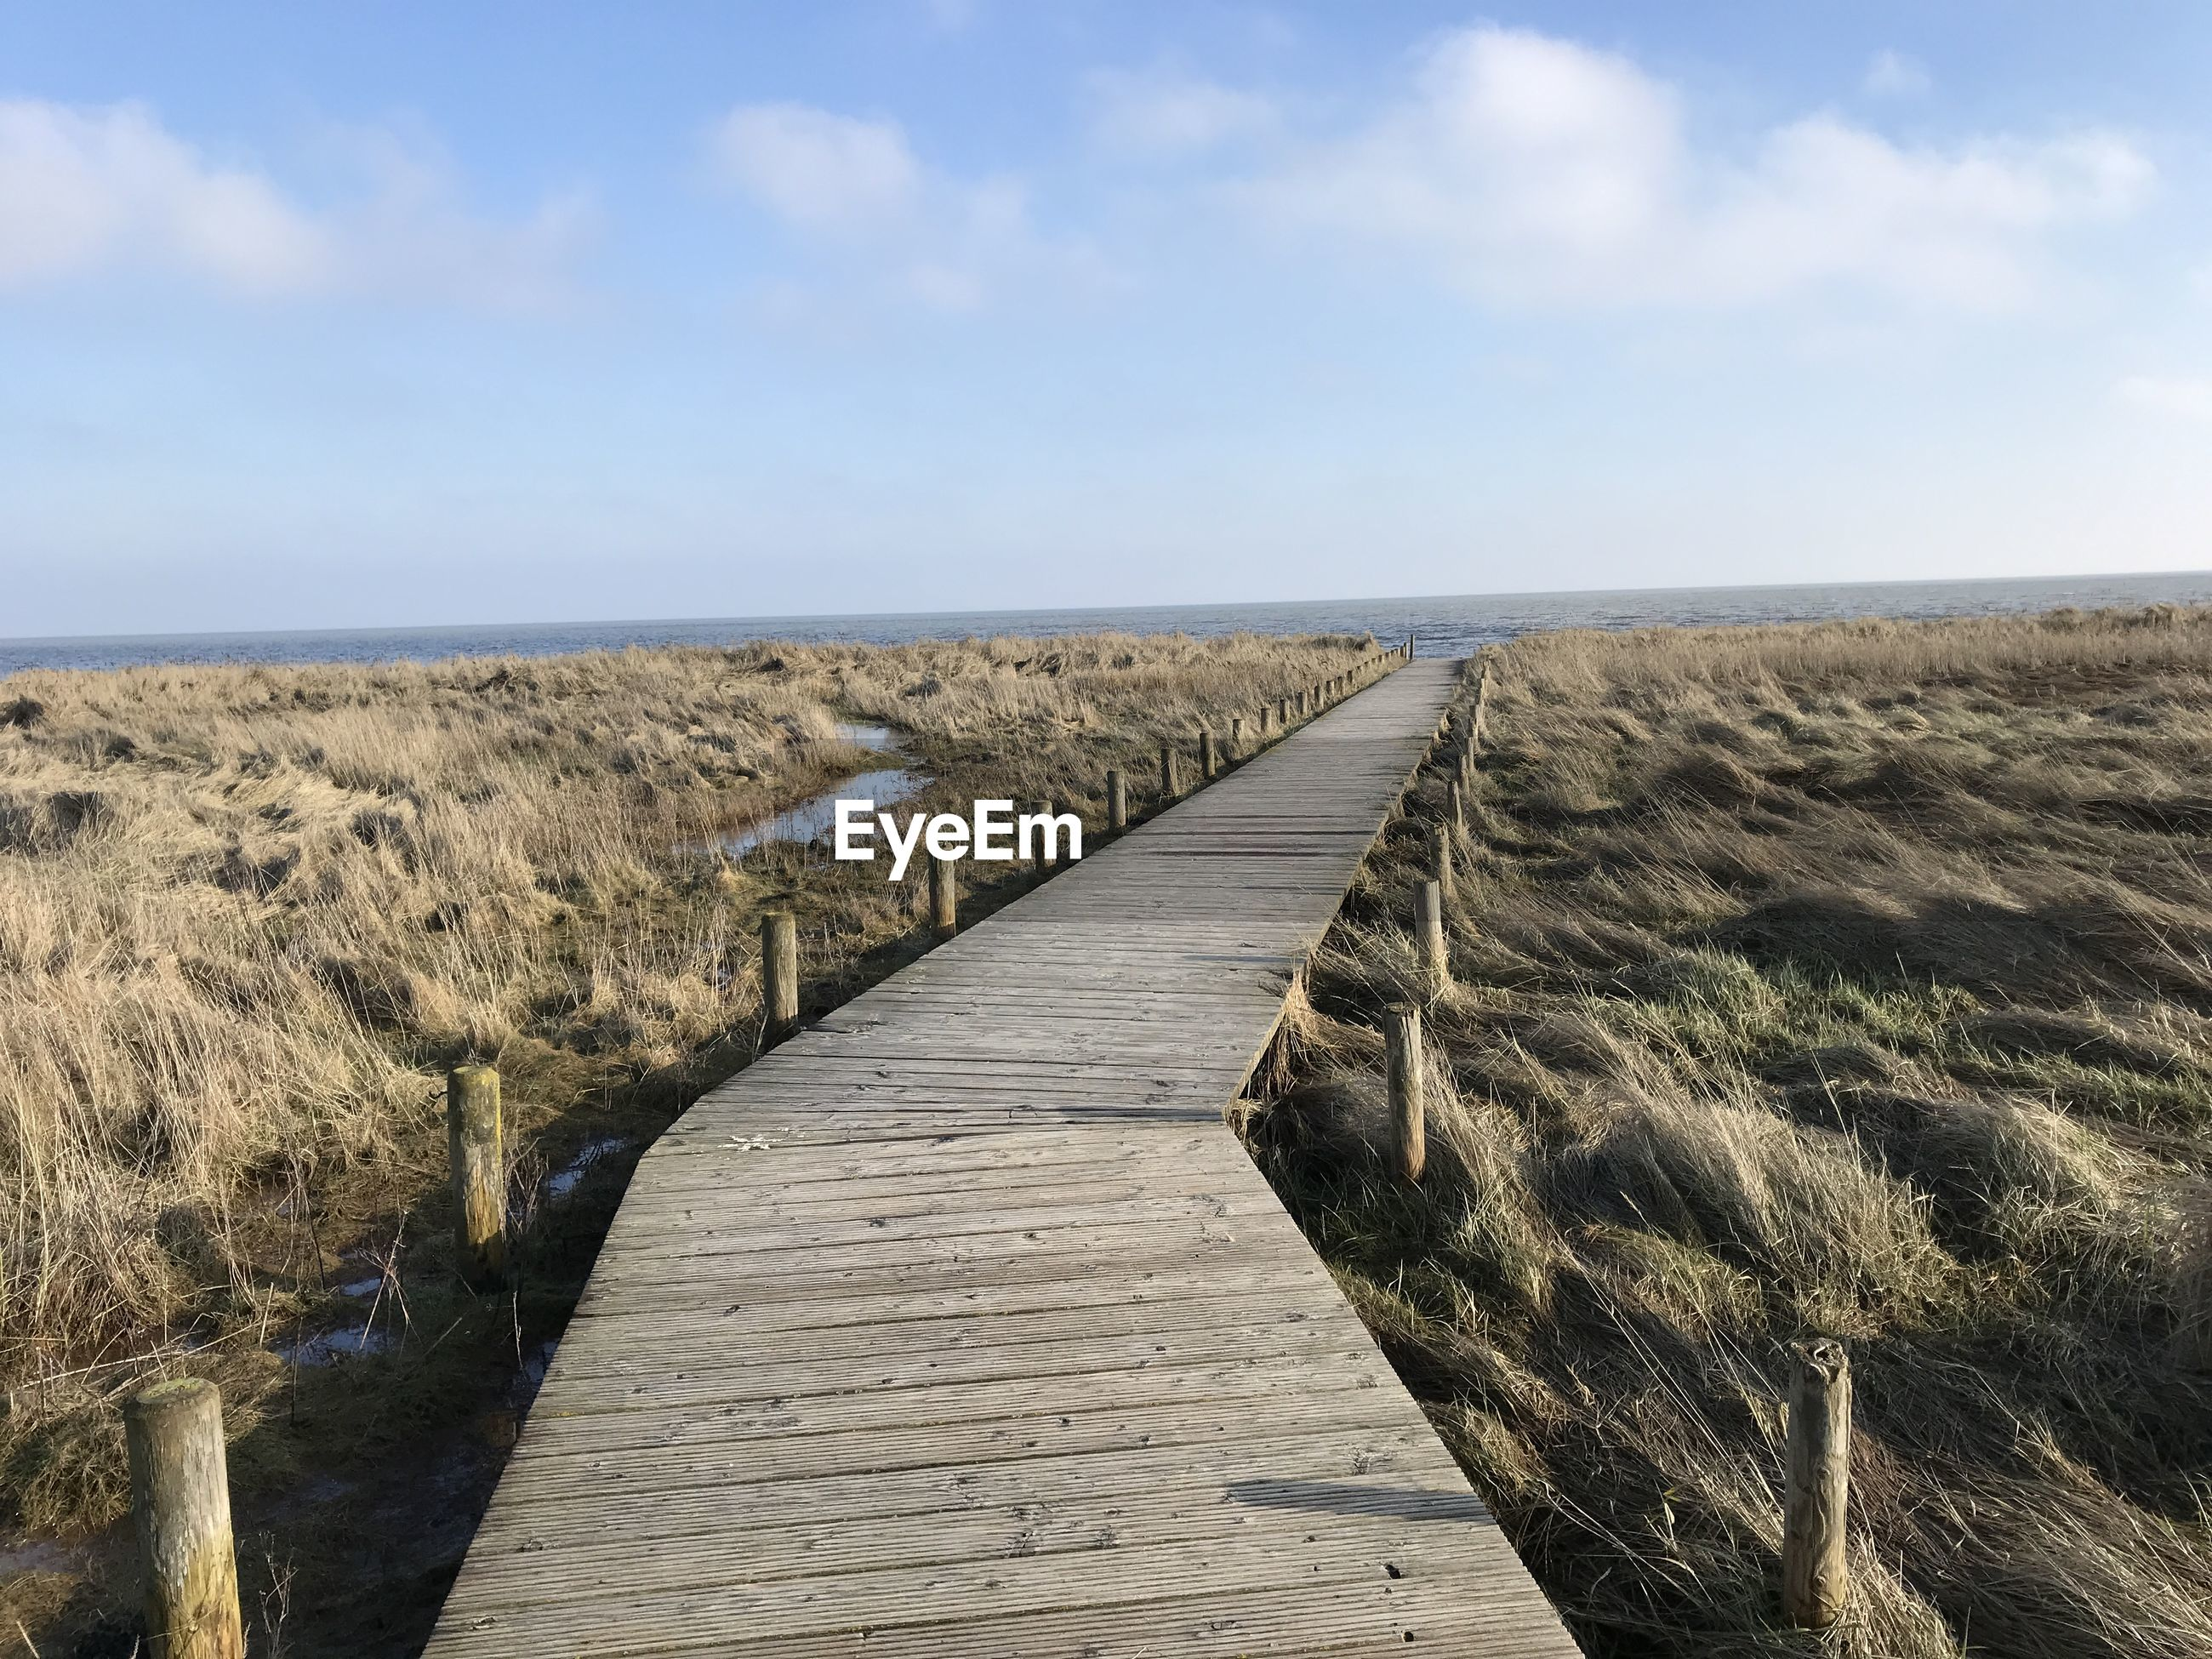 BOARDWALK LEADING TO BEACH